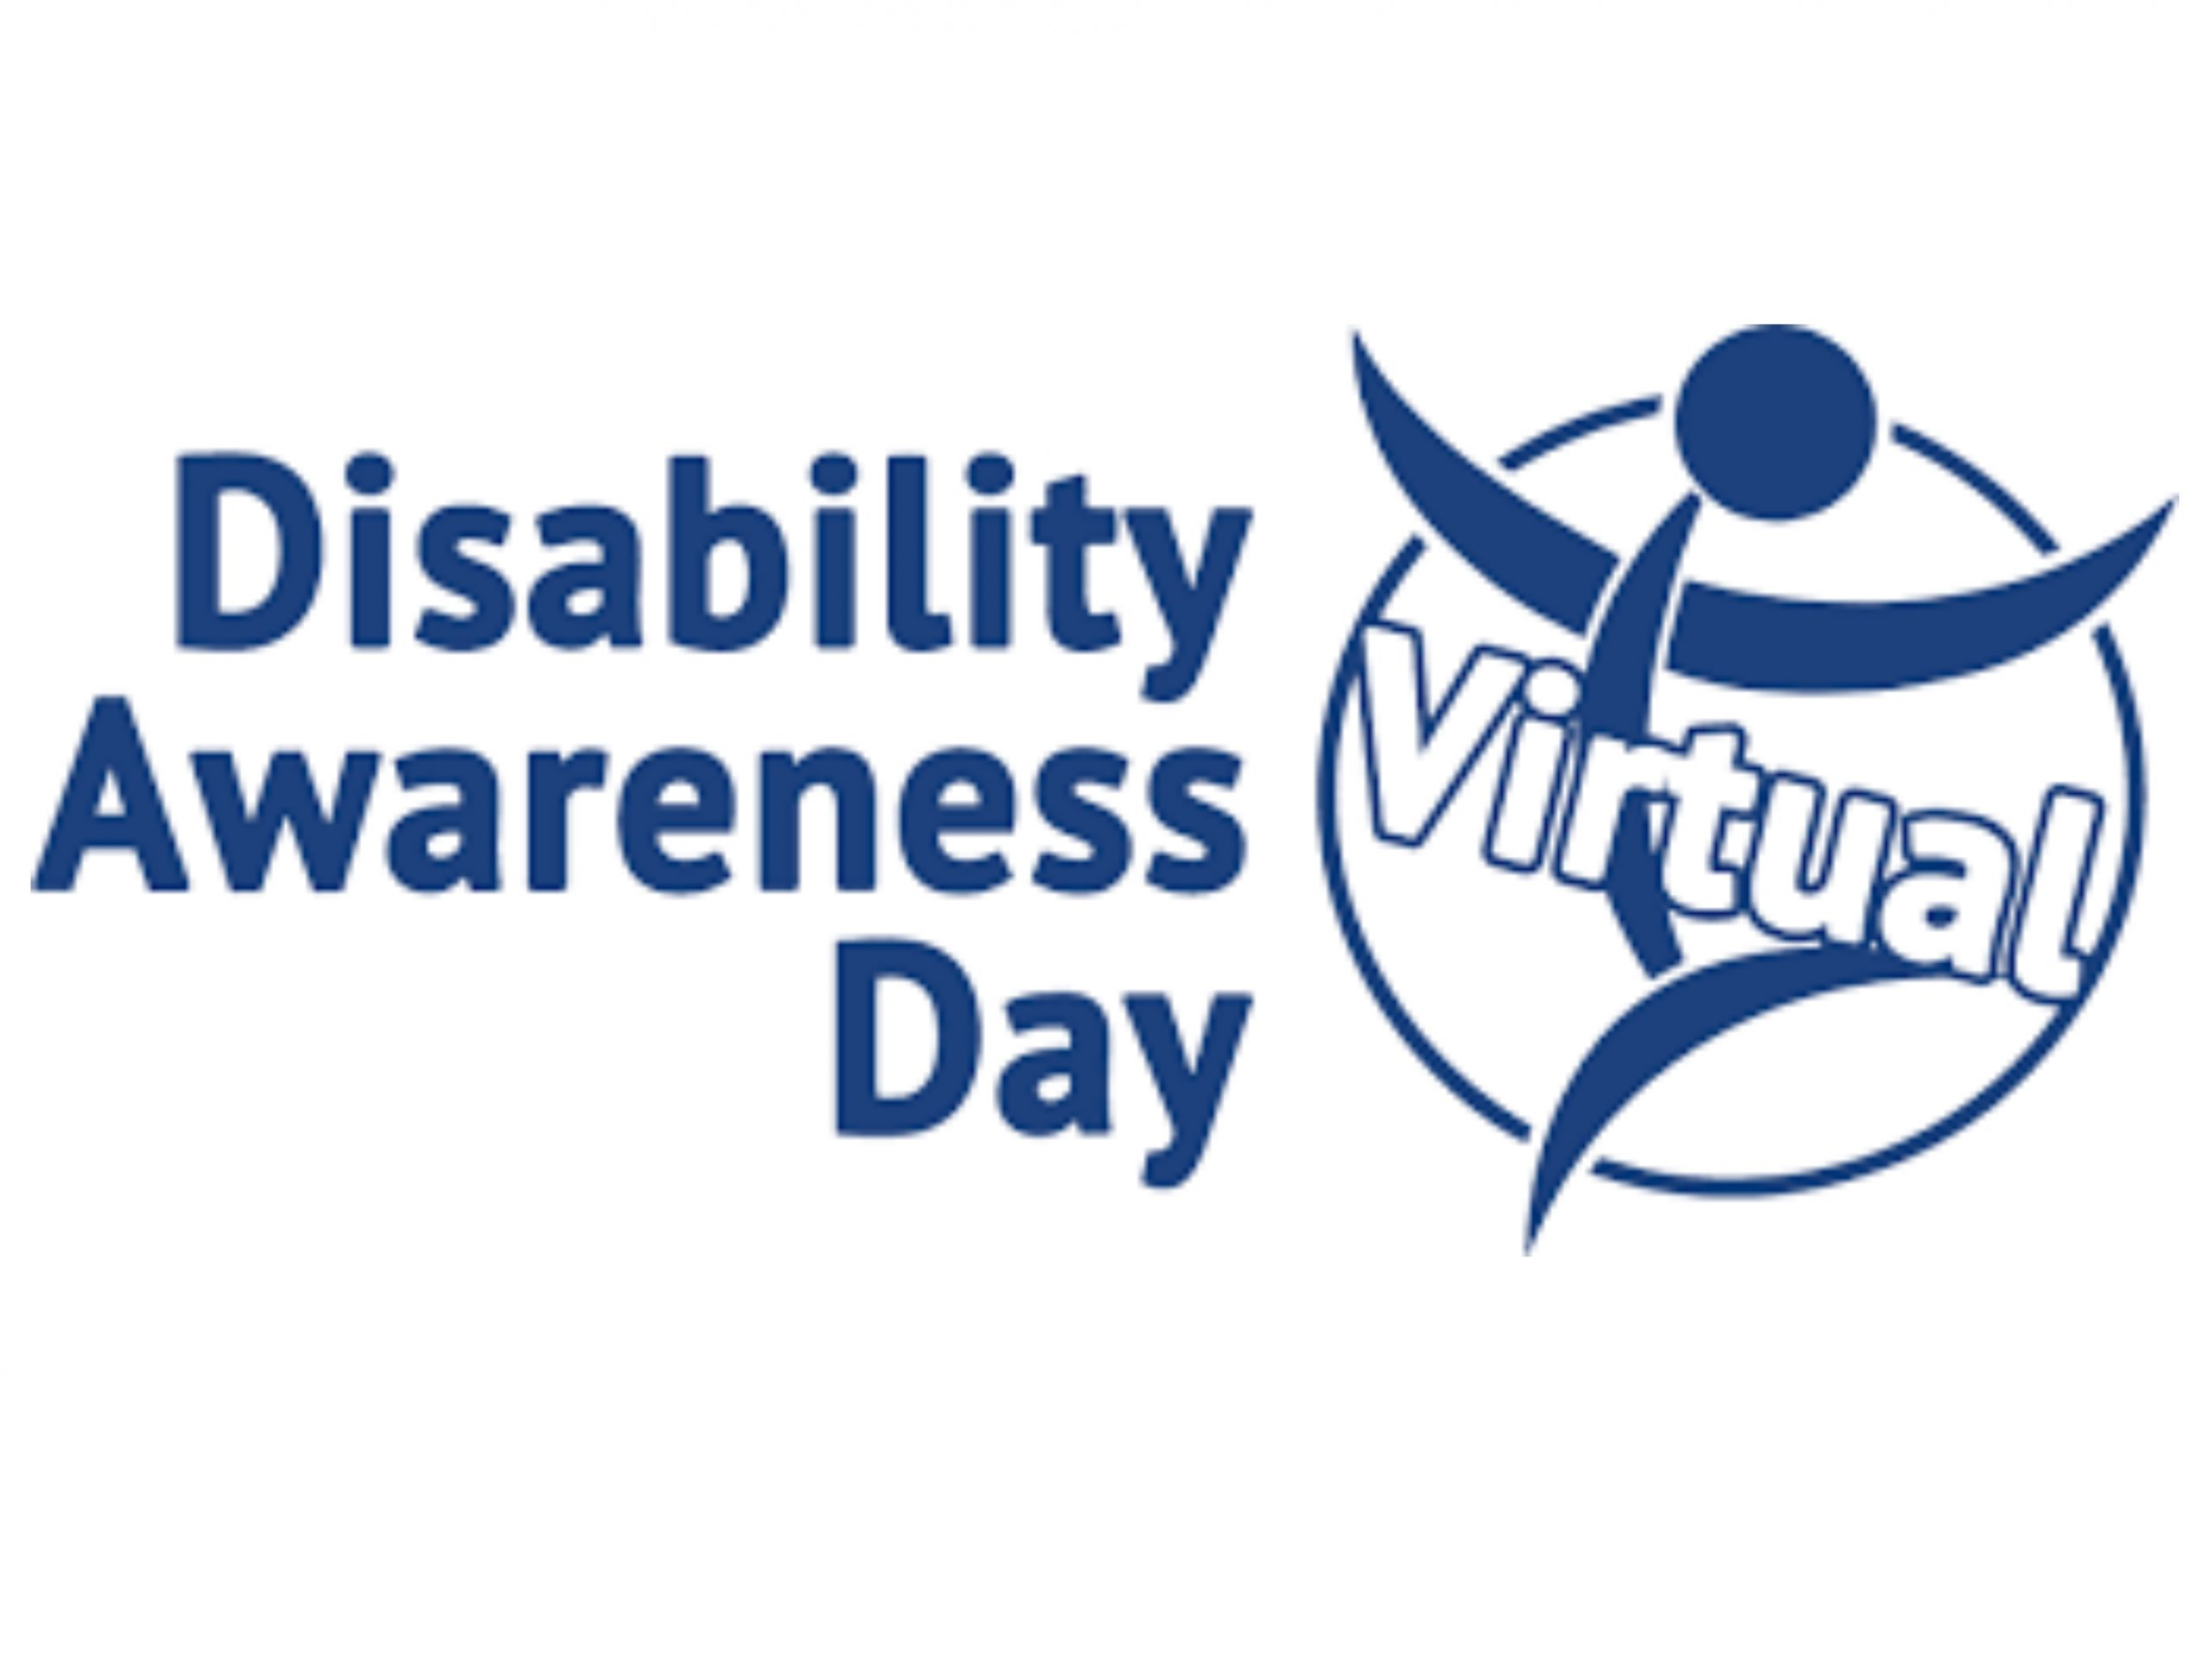 Charity, hit hard by COVID-19, set to launch International Virtual Disability Event